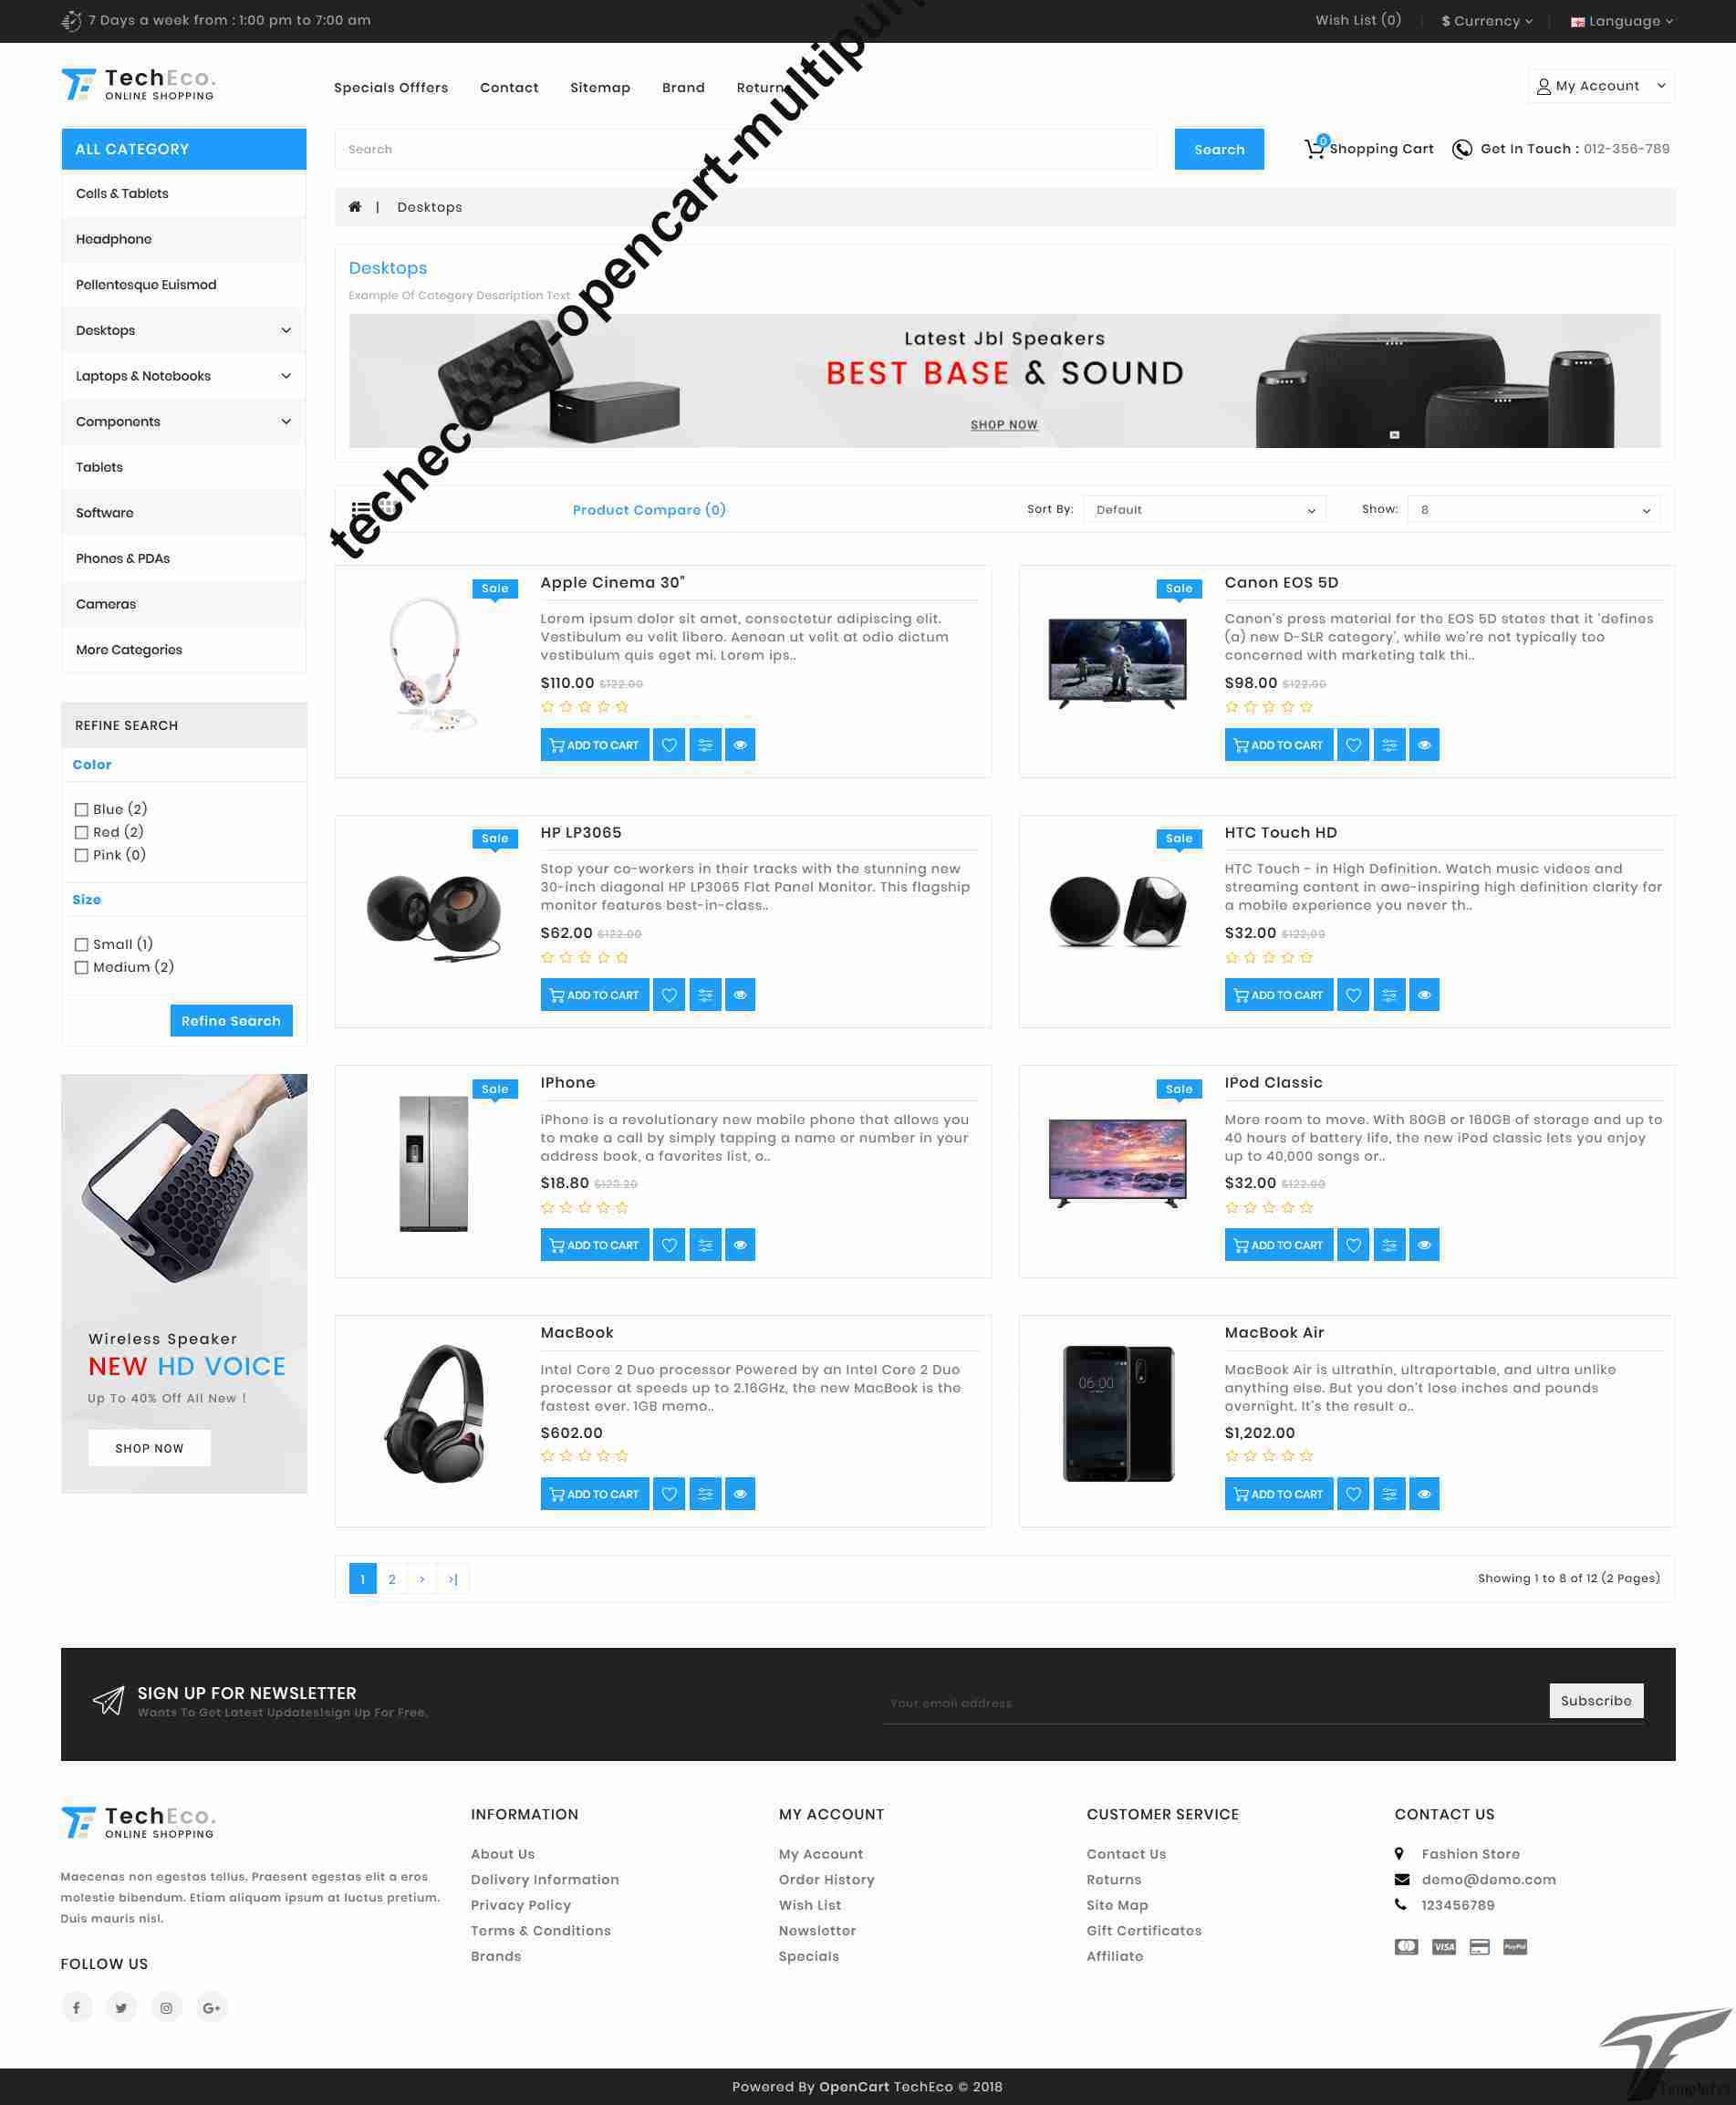 https://images.besthemes.com/images/h1_techeco-30-opencart-multipurpose-responsive-theme4-_-244832862/ScreenShots/03.ThemePreview.png